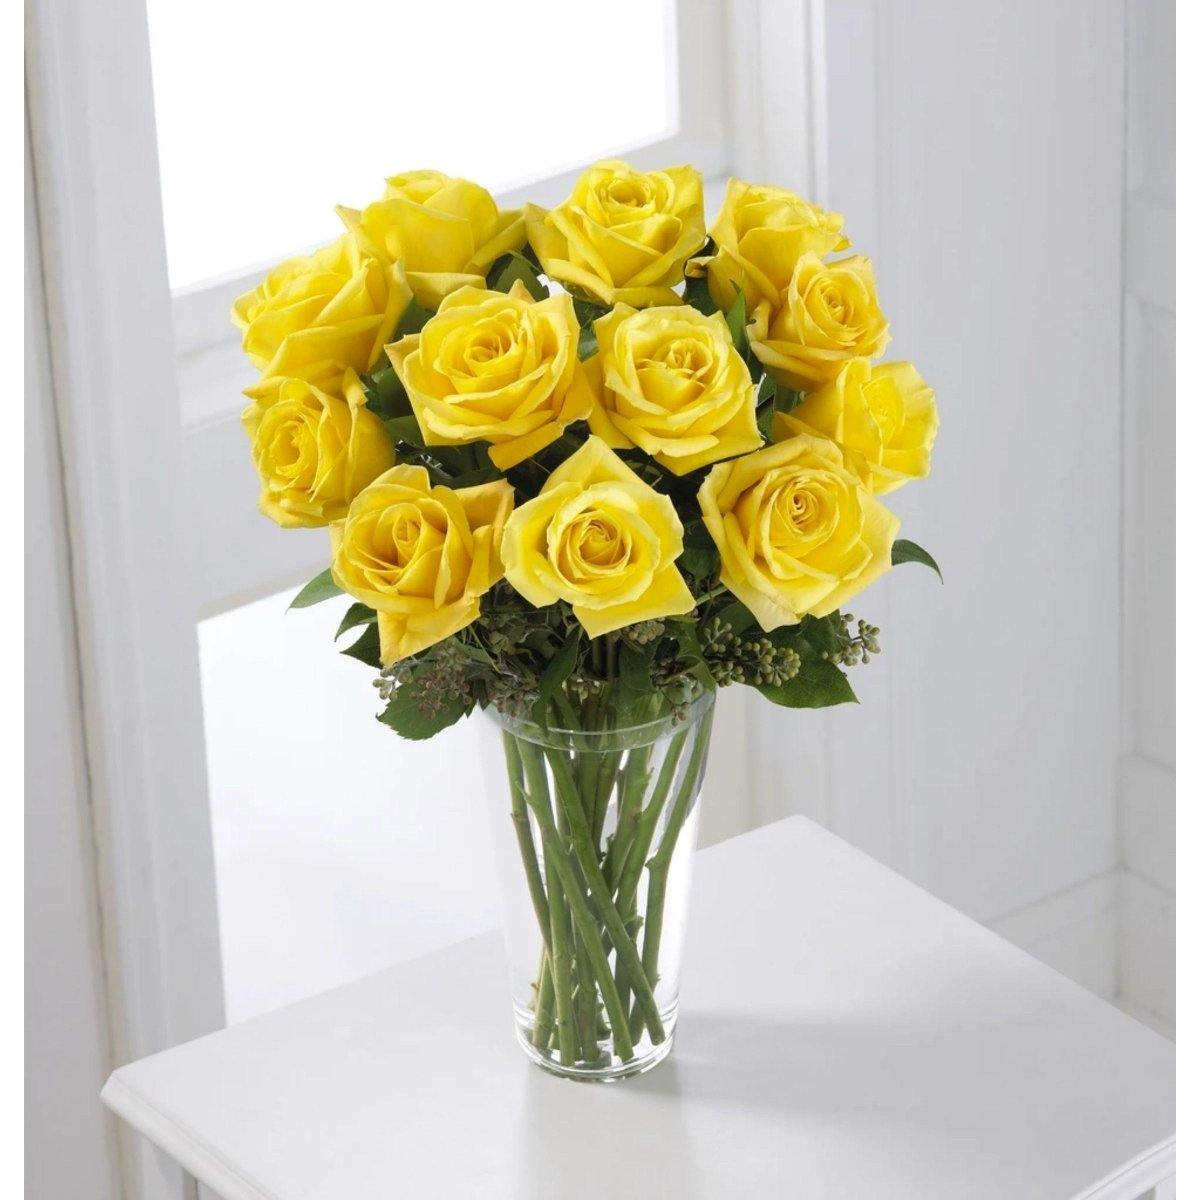 The FTD® Yellow Rose Bouquet - Shalimar Flower Shop